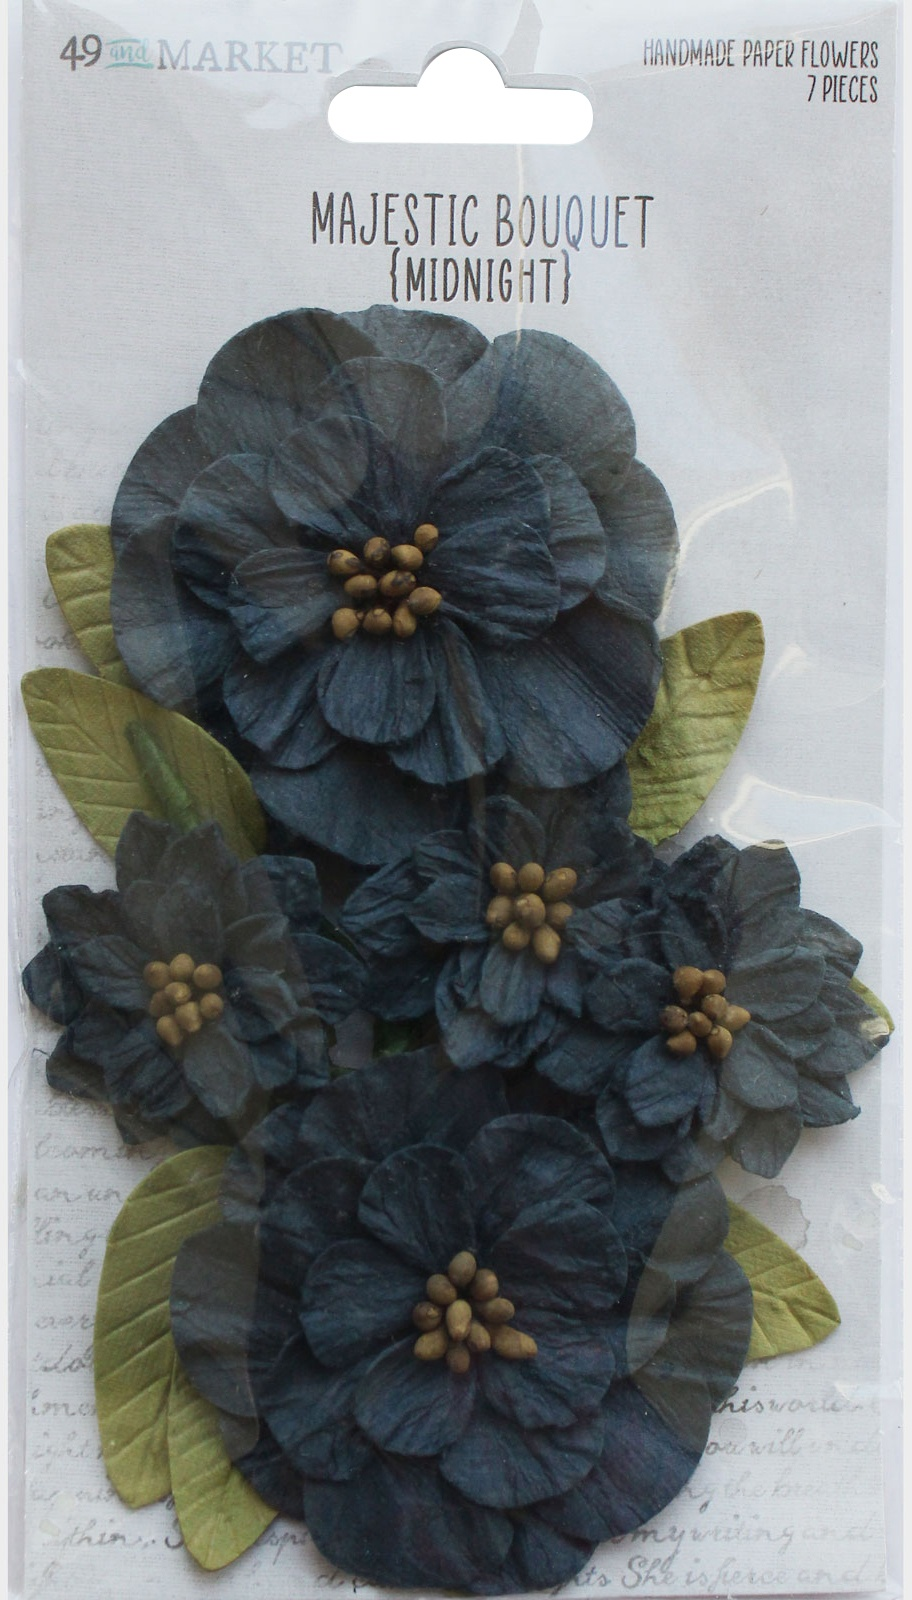 49 And Market Majestic Bouquet Paper Flowers - Midnight